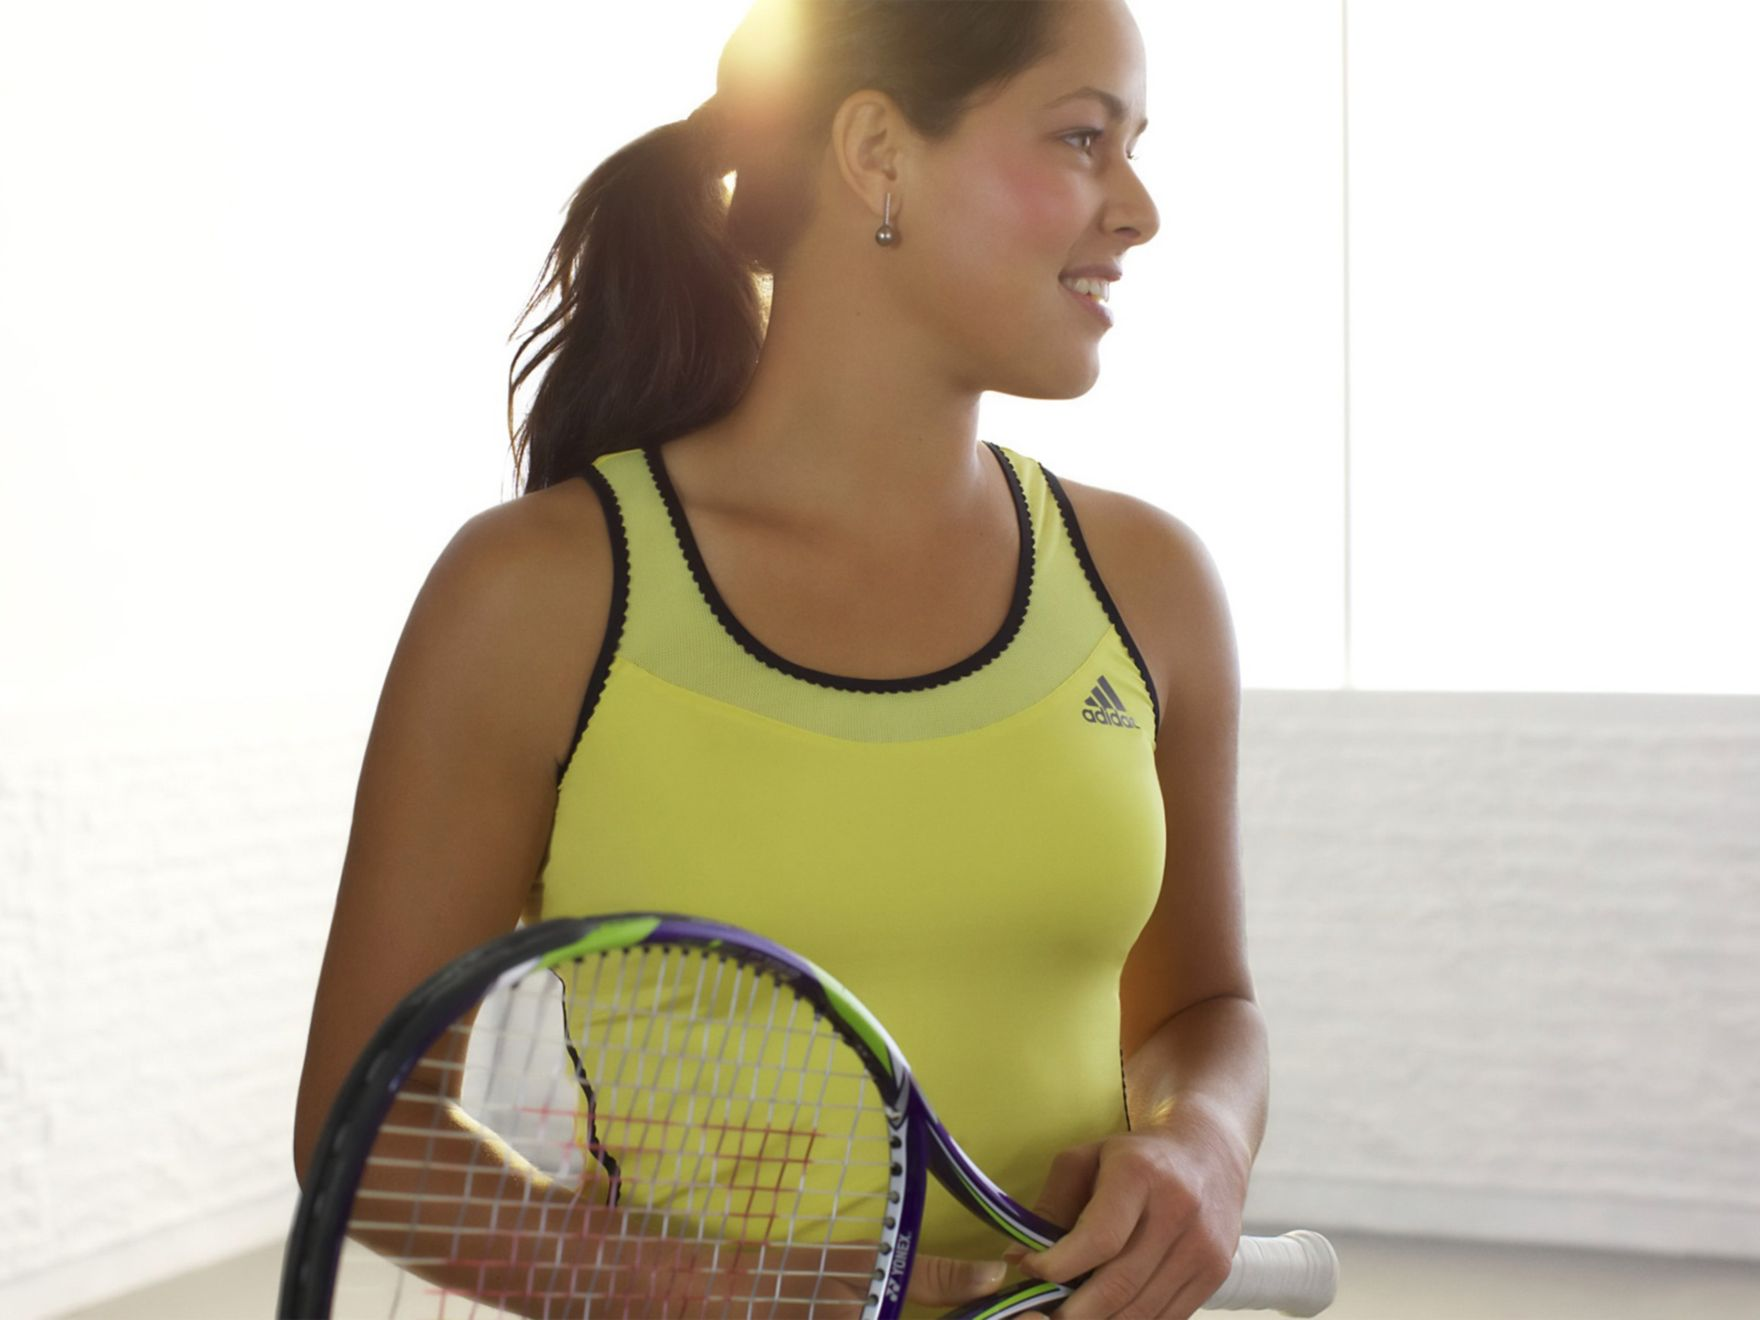 Download free HD Ana Ivanovic 7 Normal Wallpaper, image